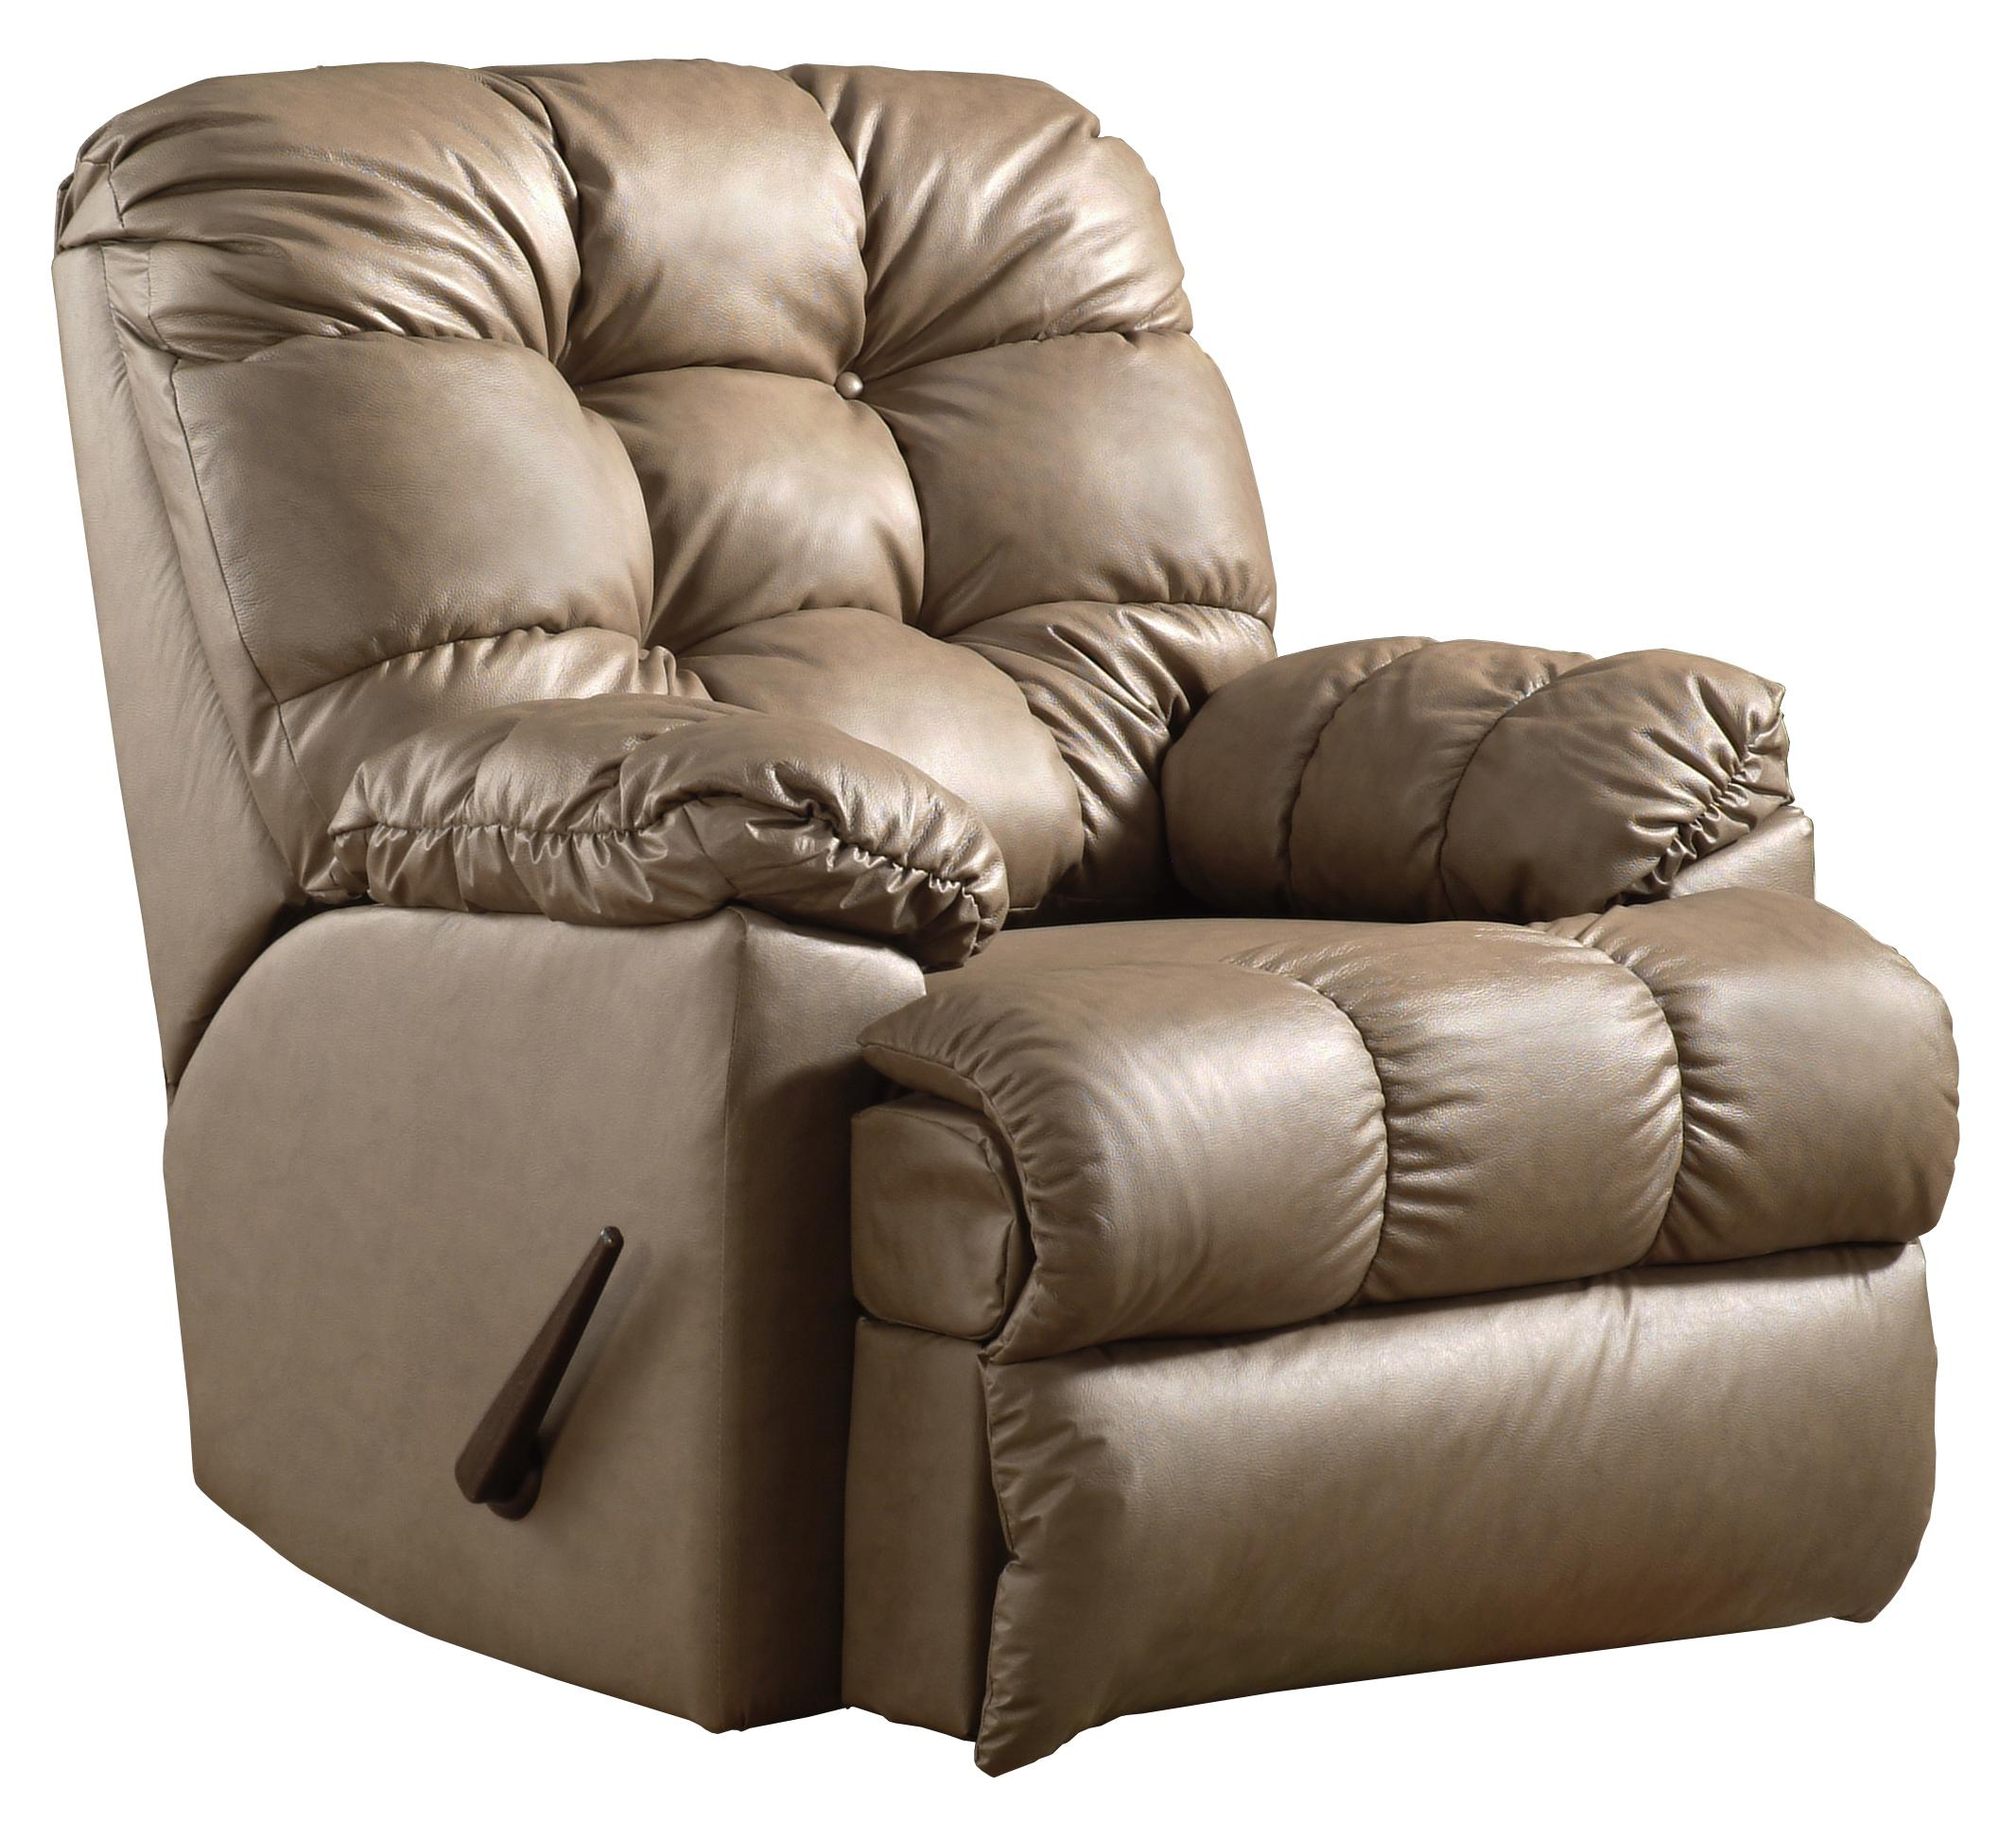 Belfort Motion Recliners Bristol Power Recliner - Item Number: 2103P